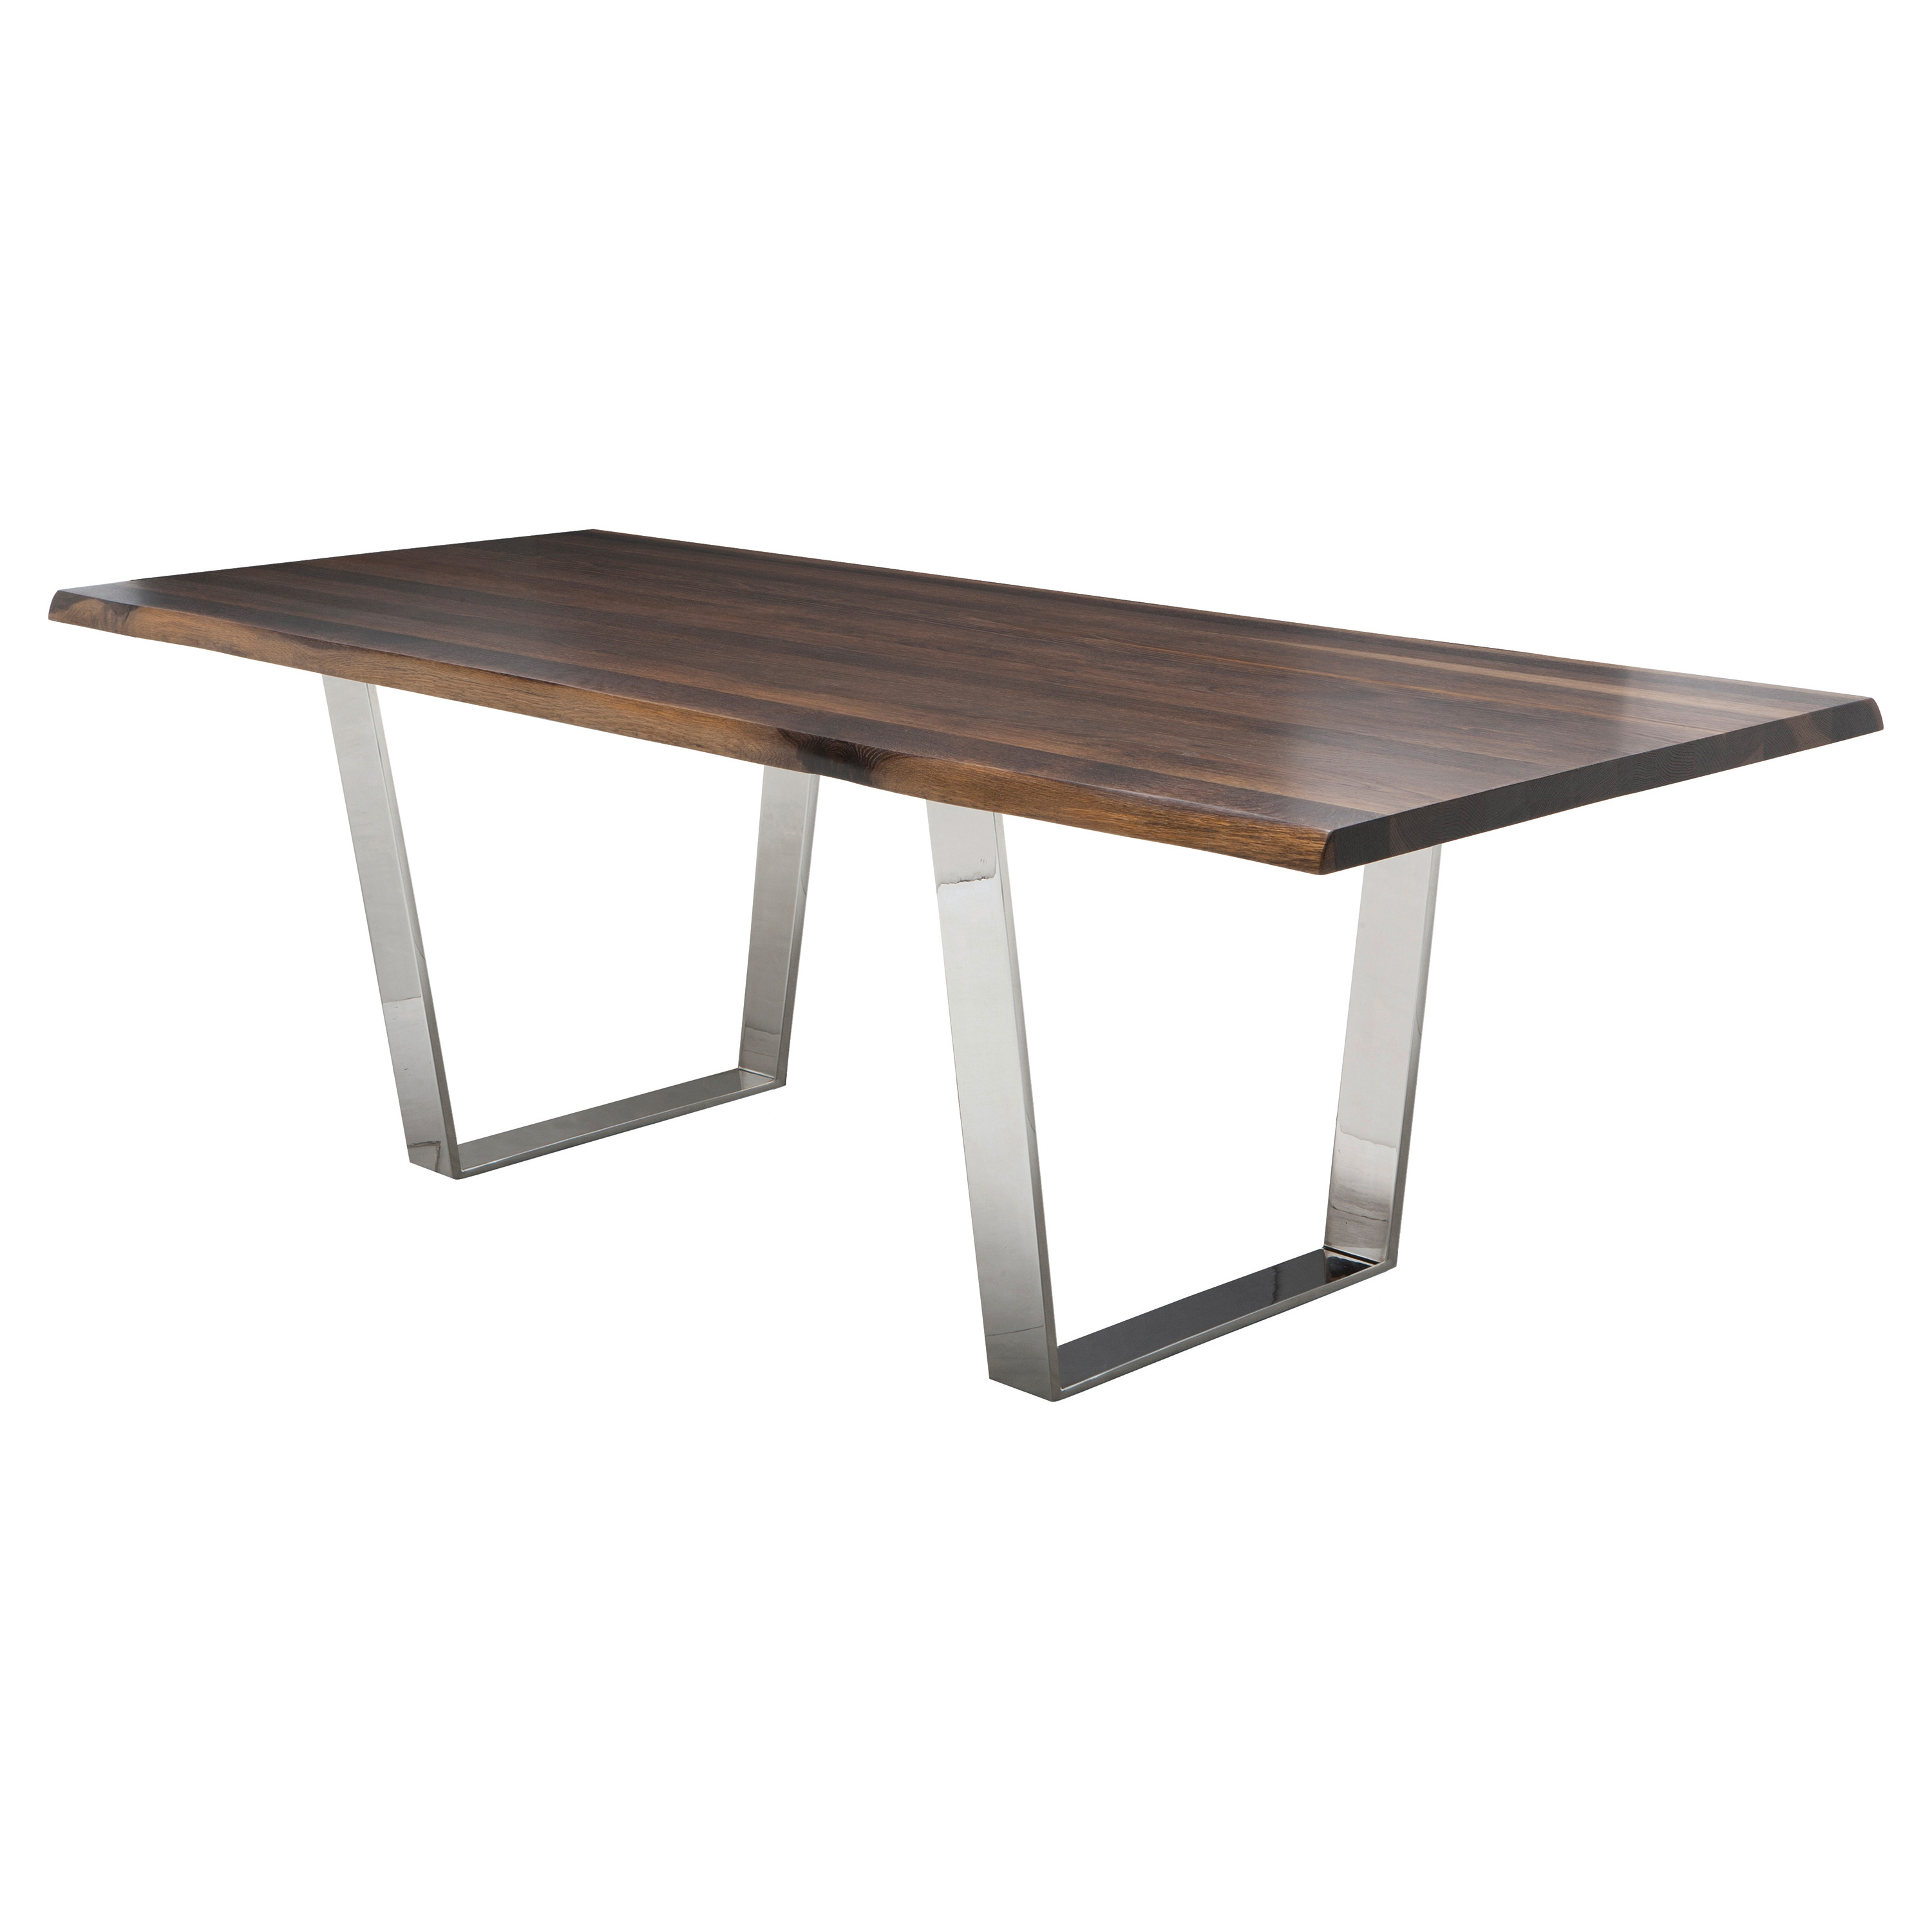 Cogsworth Industrial Brown Oak Gold Dining Table - 112W